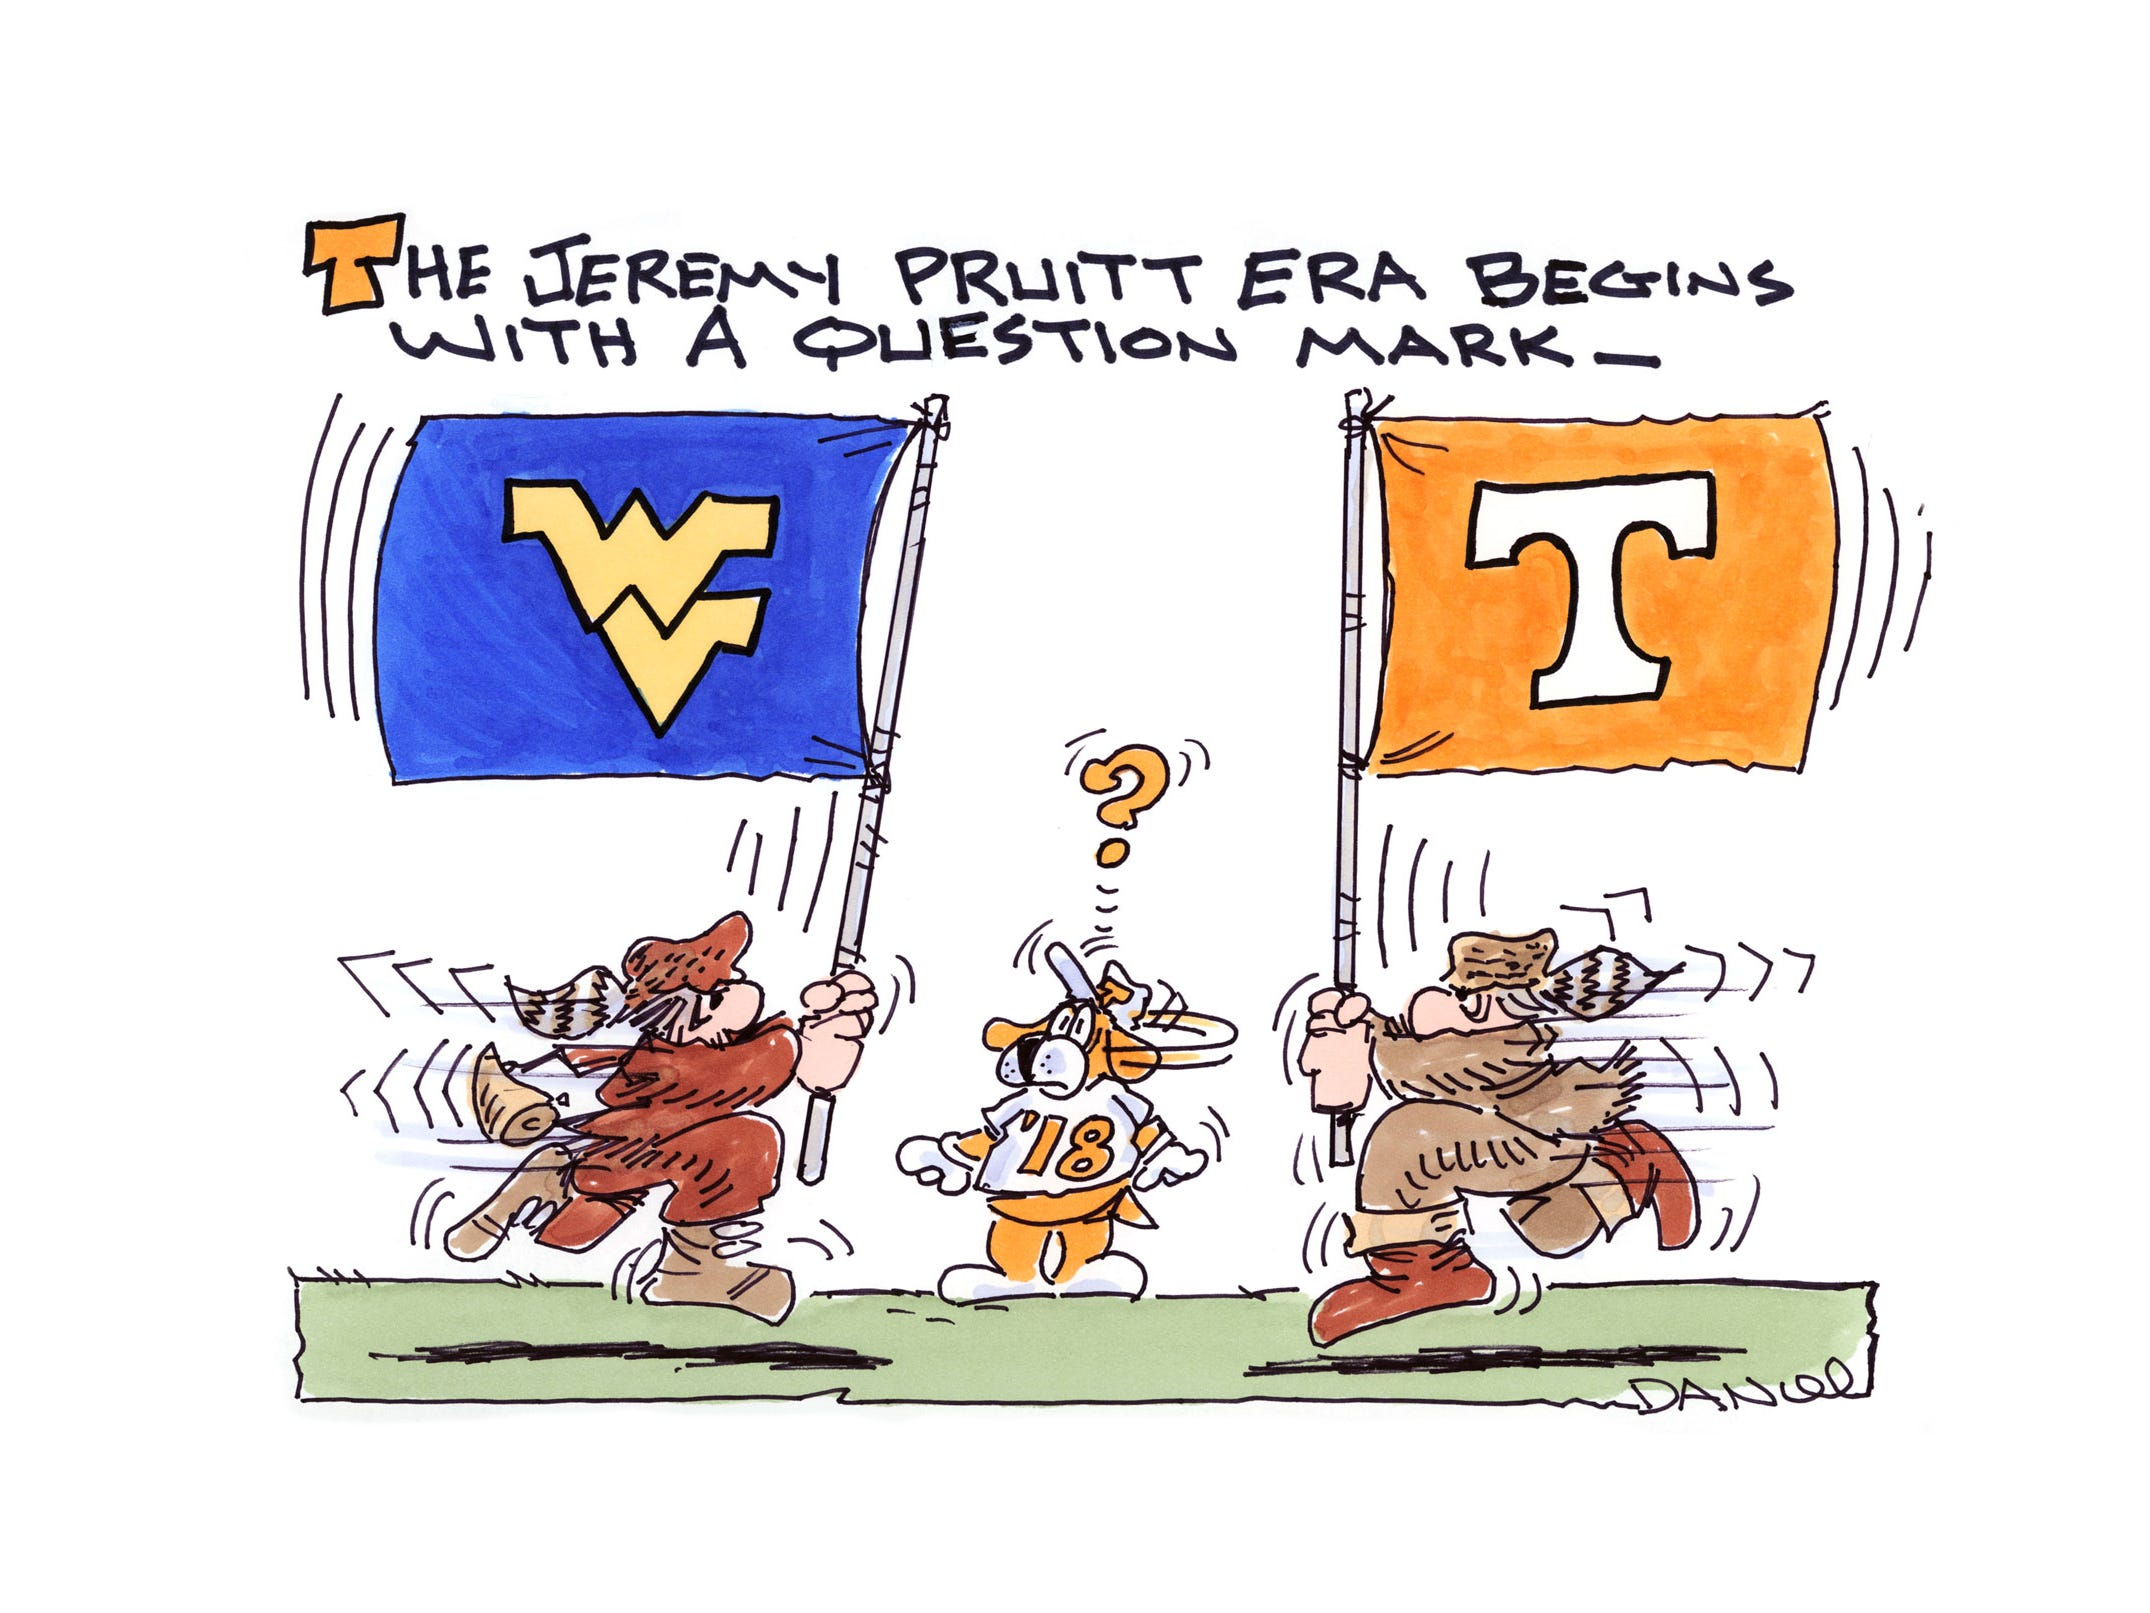 Charlie Daniel Voltoon for West Virginia and Tennessee.